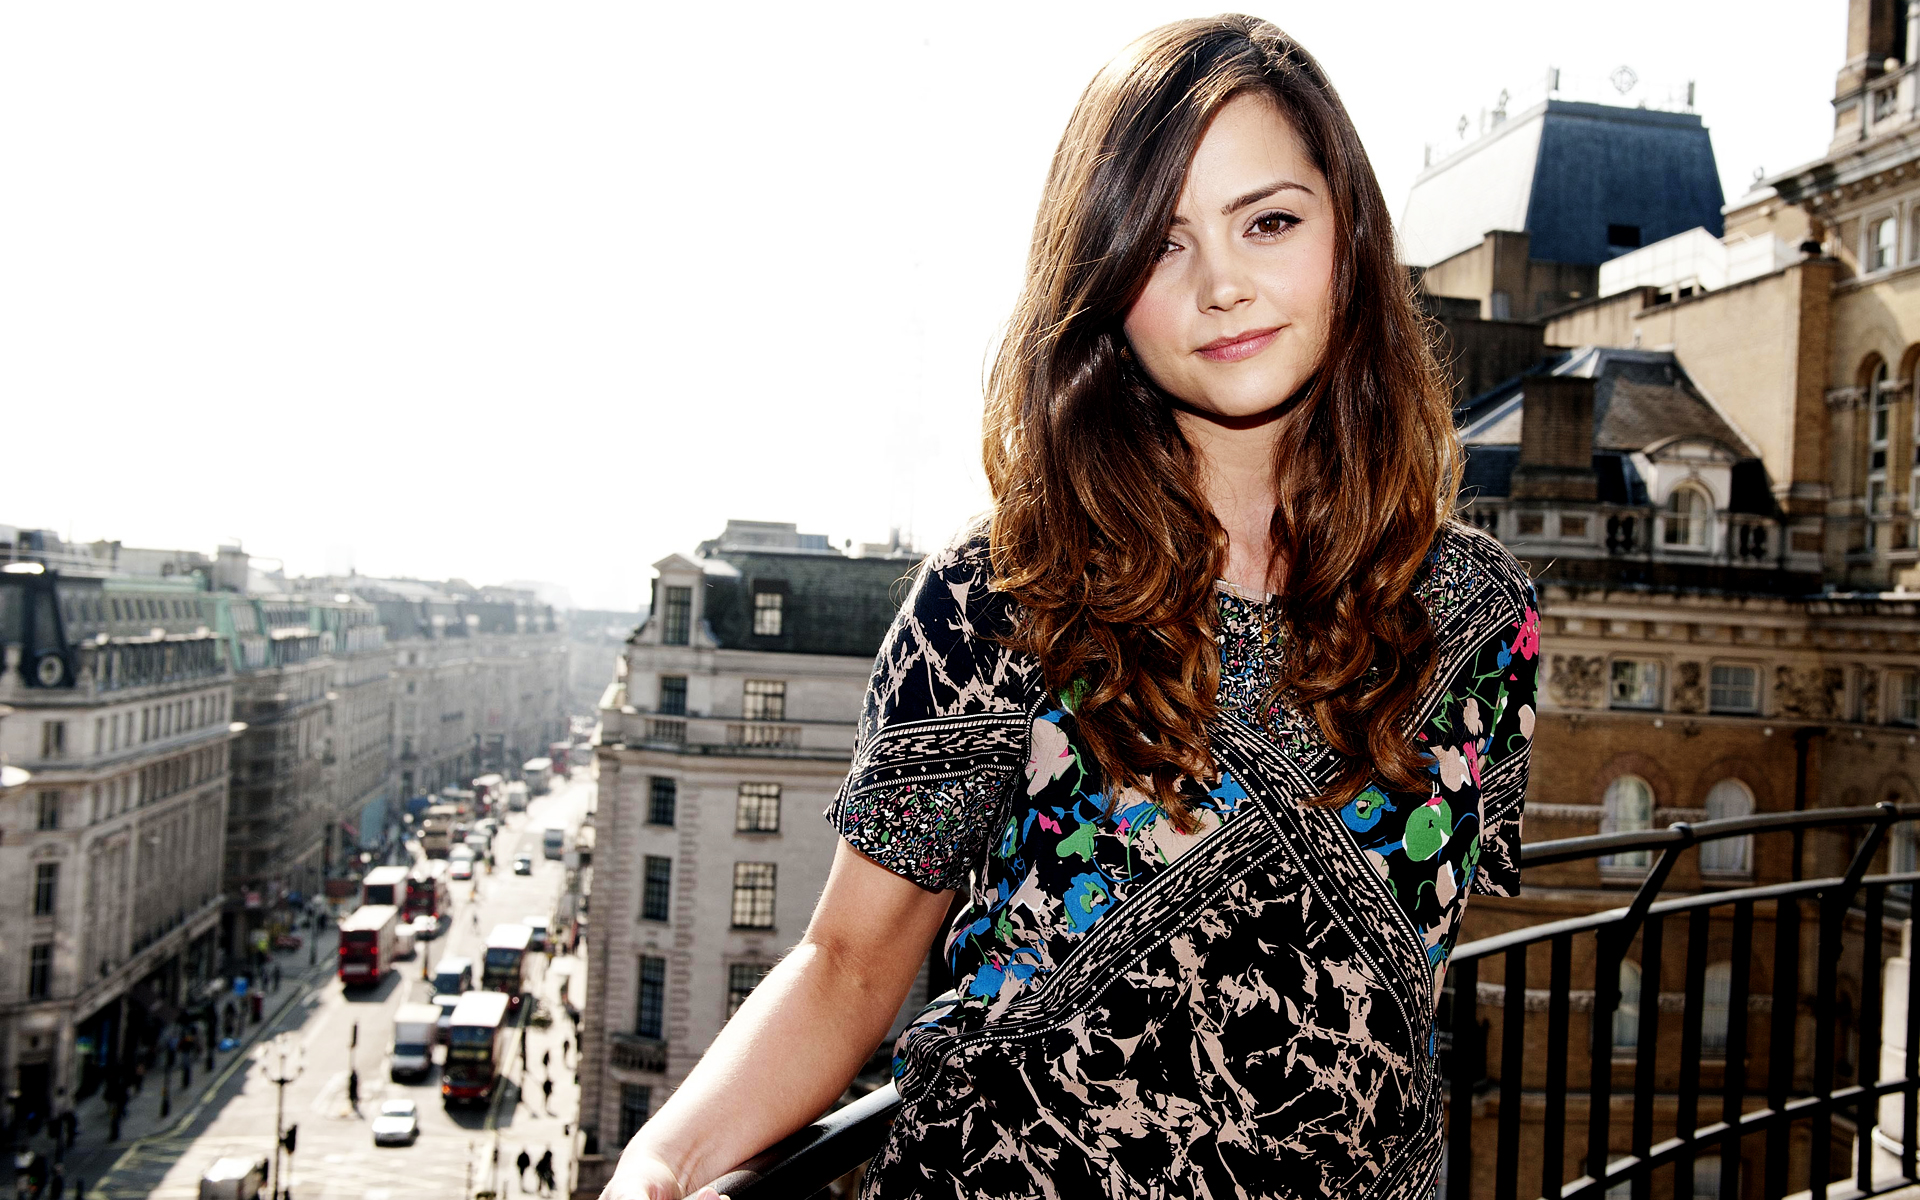 1920x1200 - Jenna-Louise Coleman Wallpapers 10